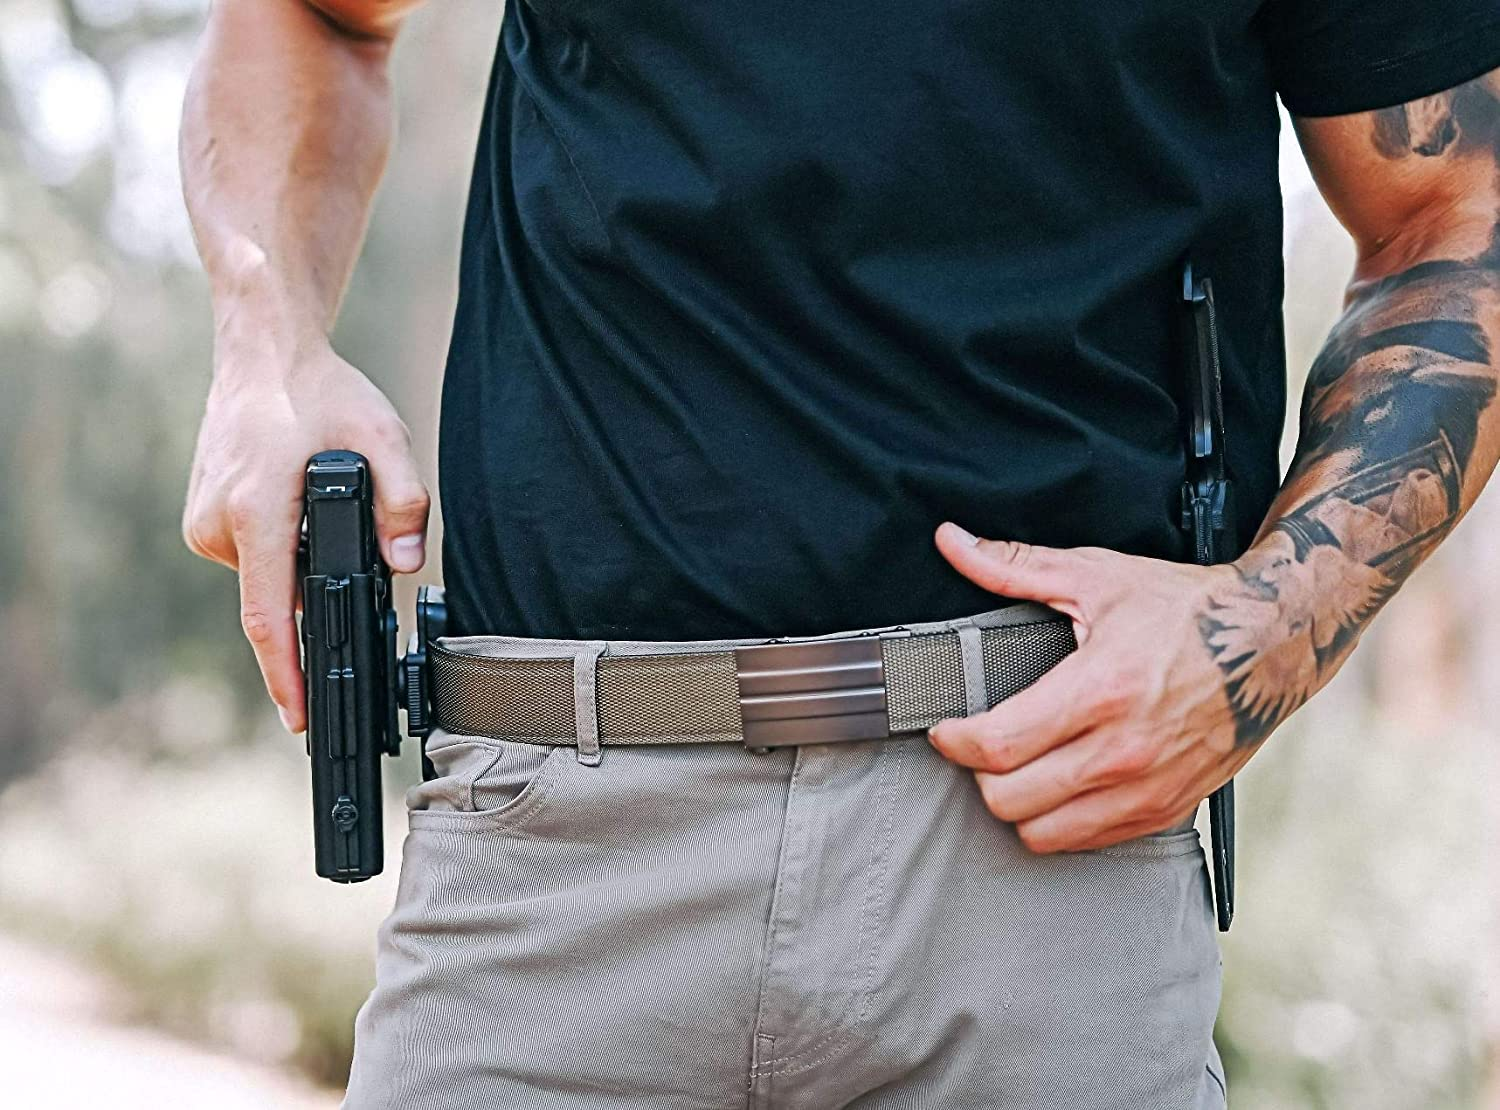 Amazon Com Kore Tactical Gun Belt X2 Buckle Tan Reinforced Belt Clothing Precise, secure fit provides a smooth, fast draw every time. kore tactical gun belt x2 buckle